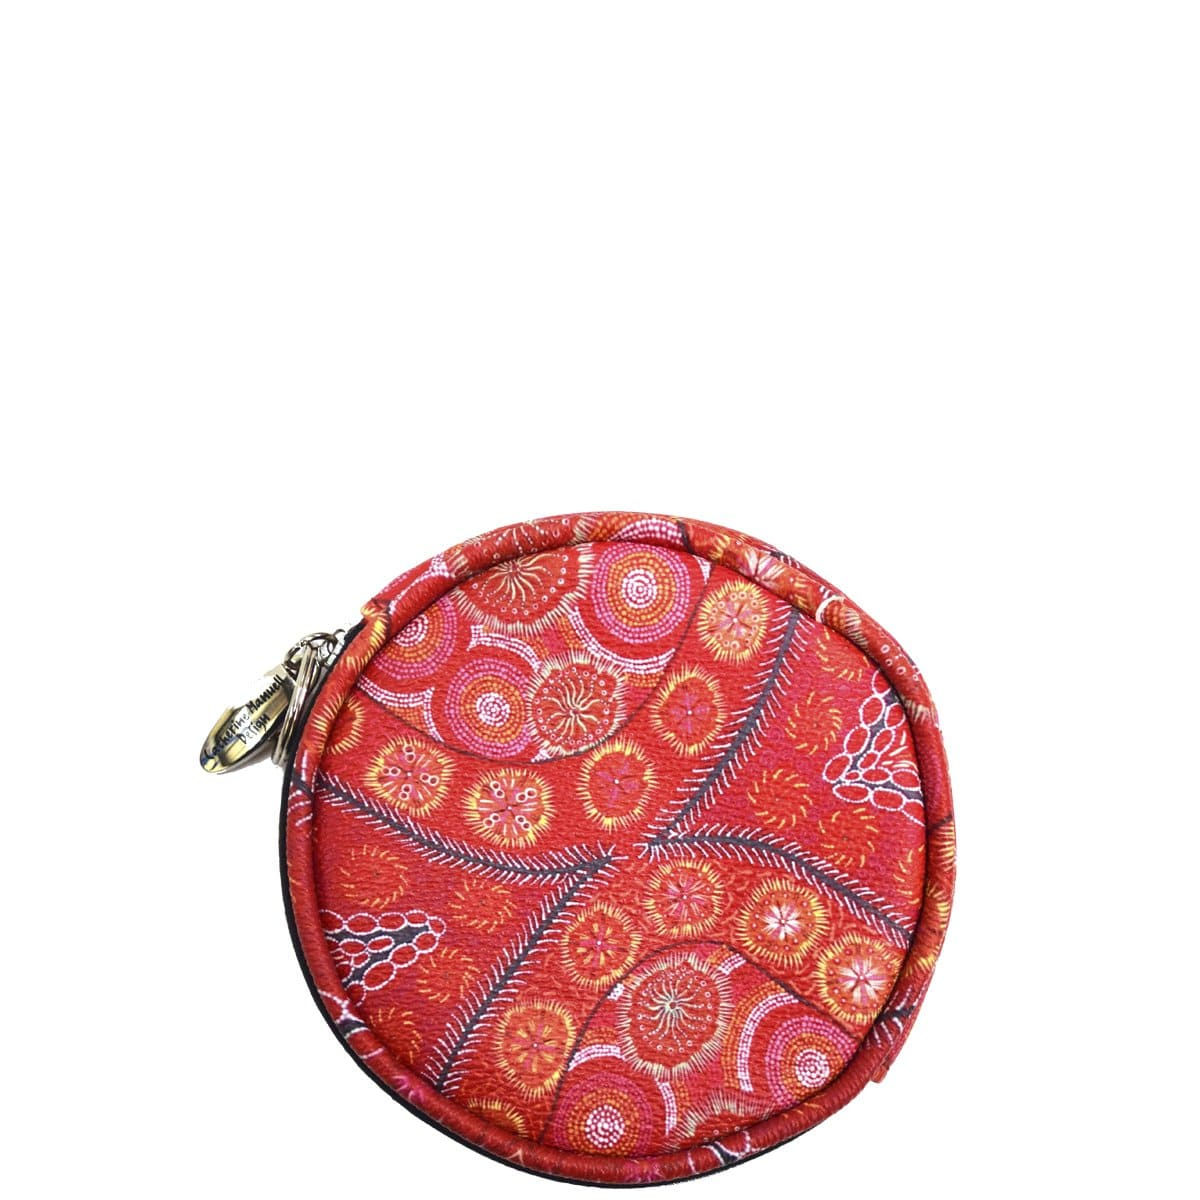 Full Moon Coin Purse AAP - Putipula Tjuta